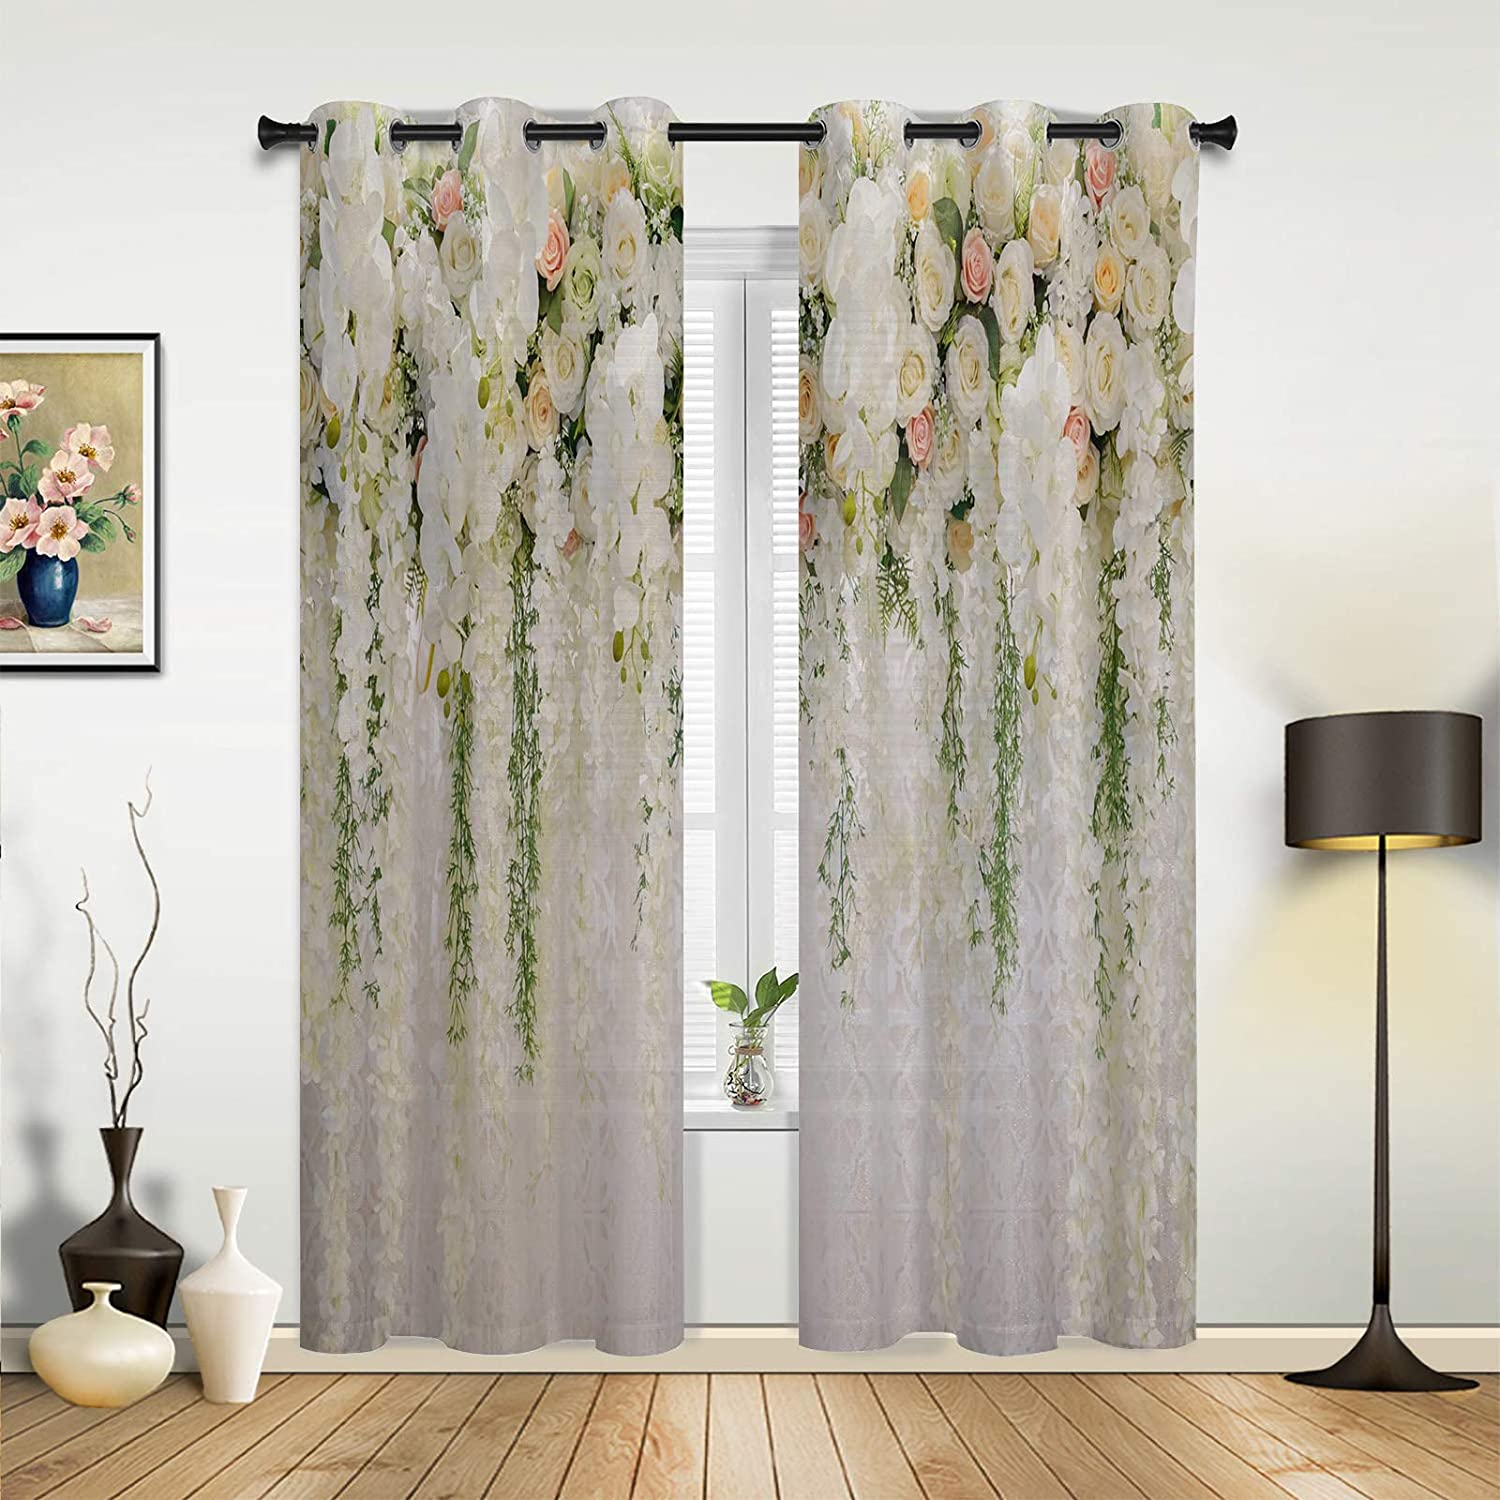 Easy-to-use Window Sheer Curtains for Rapid rise Bedroom Living White Romantic Ros Room